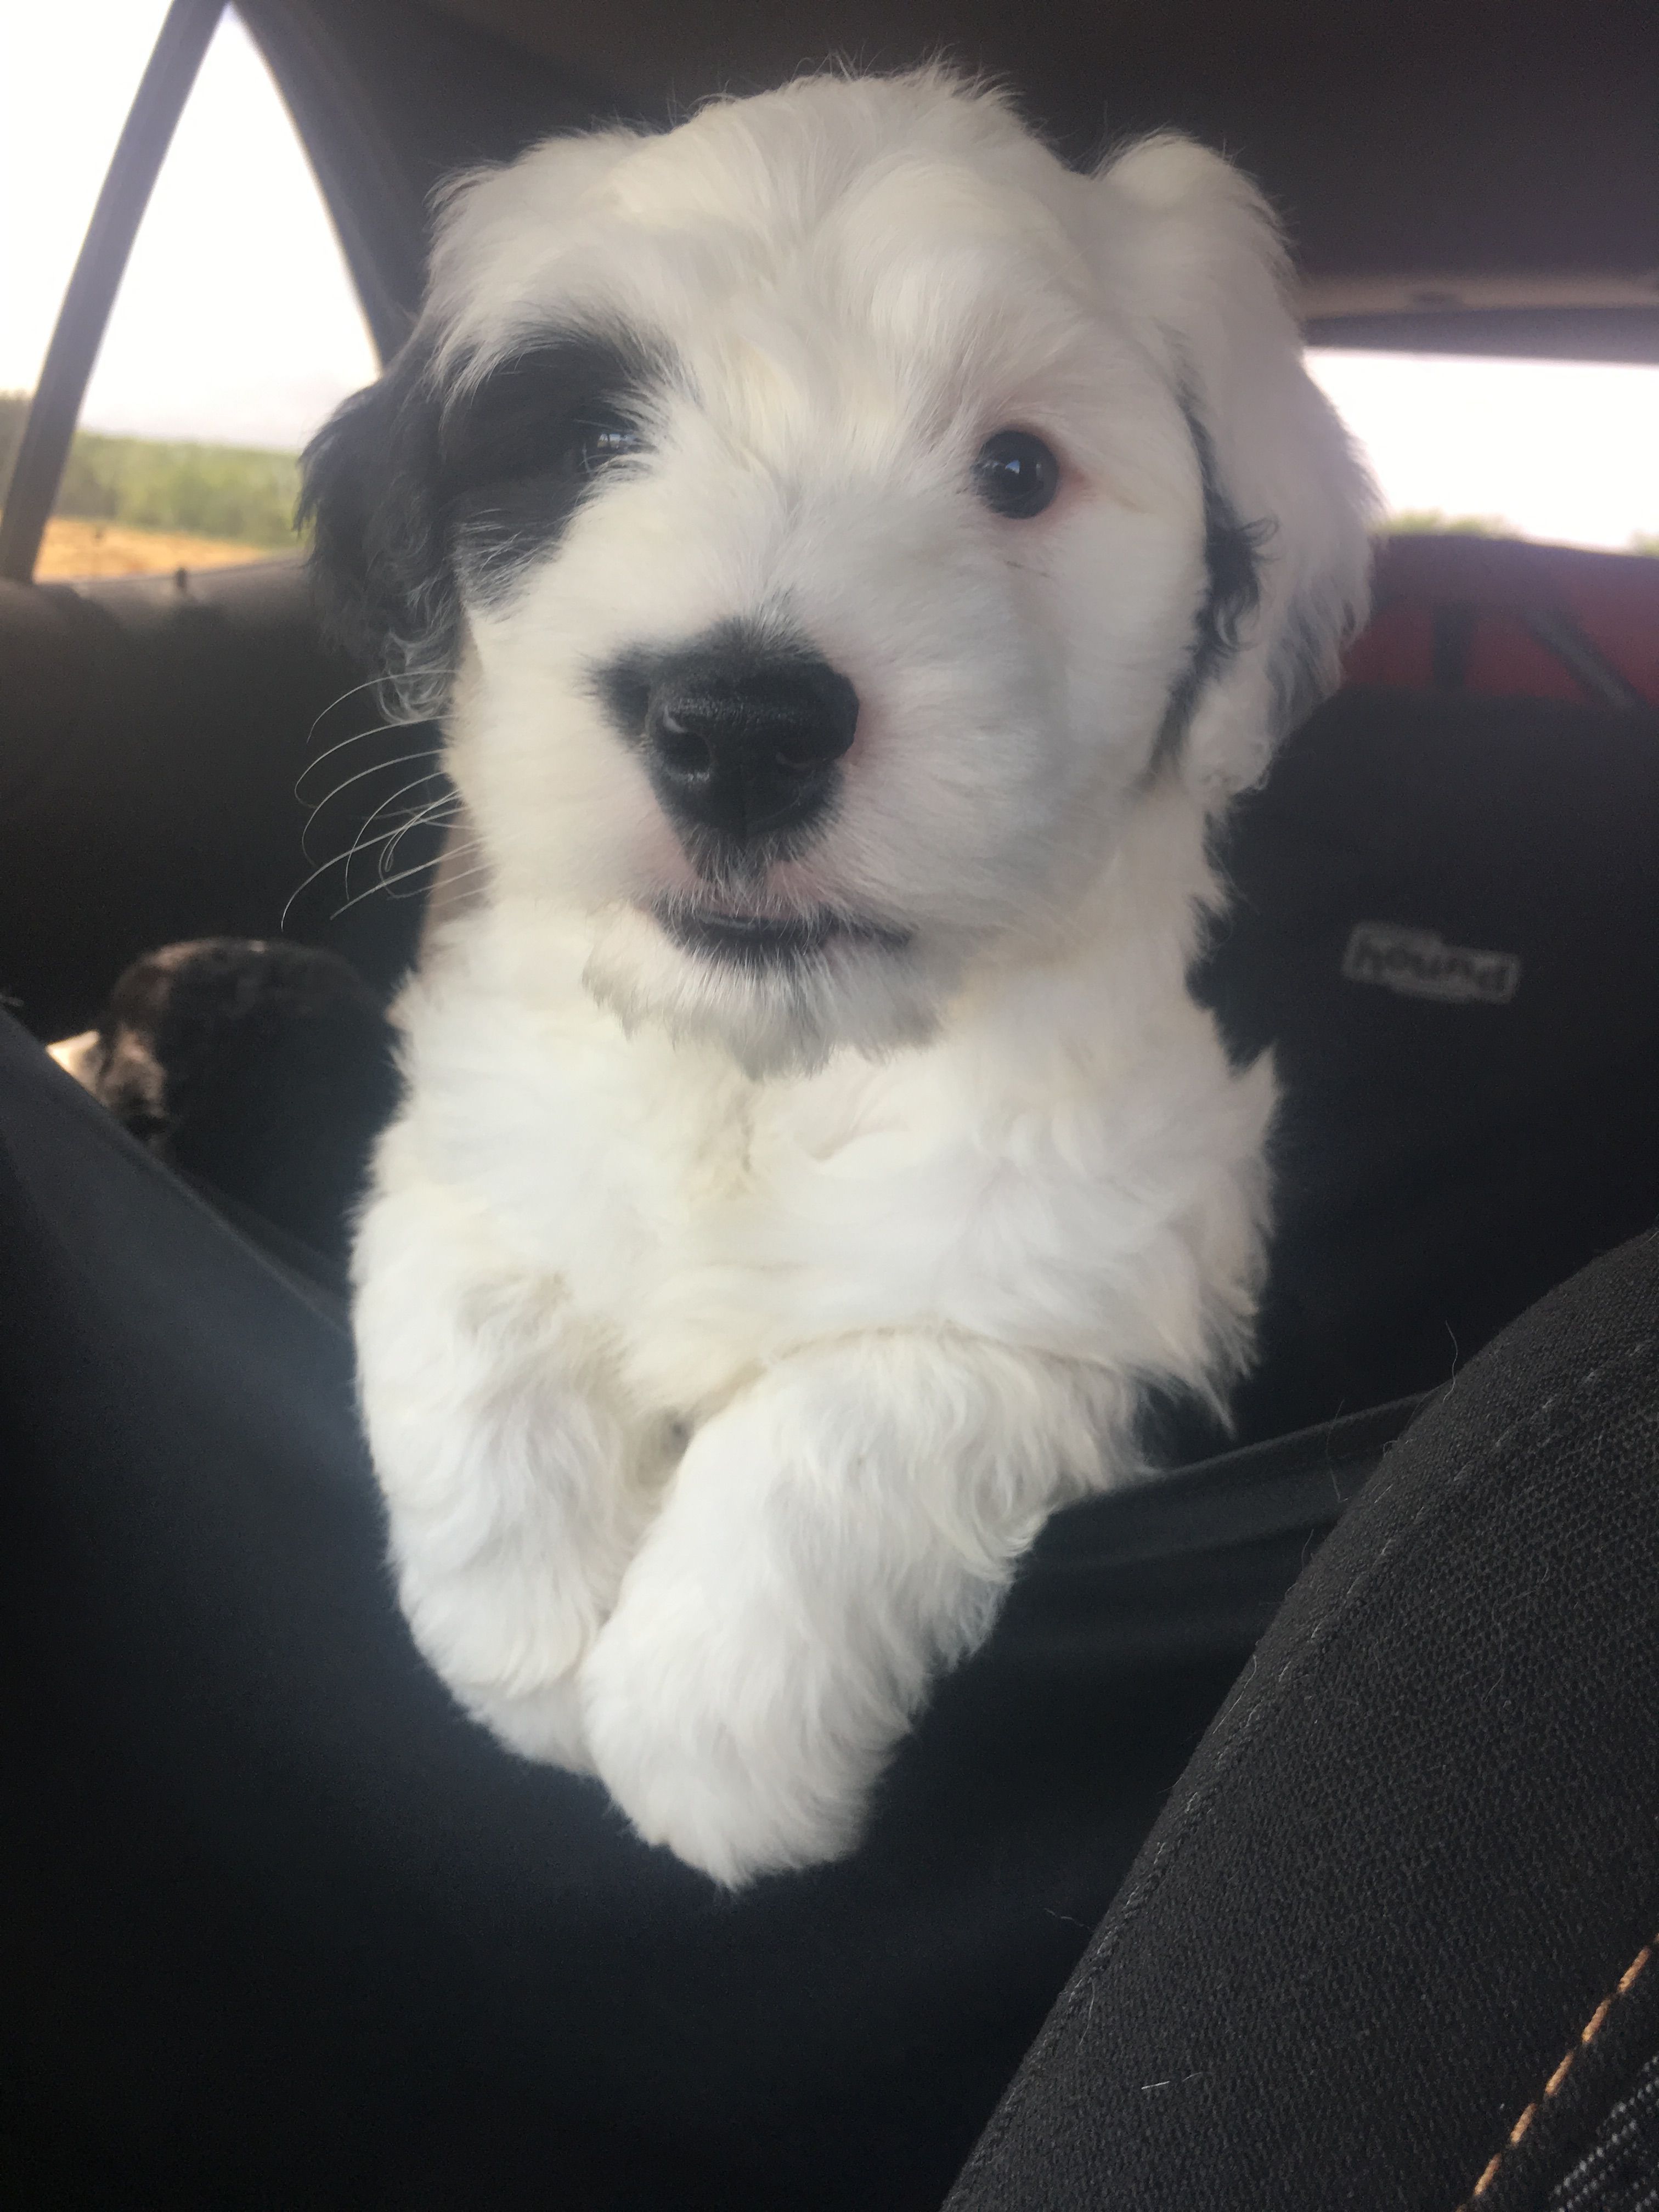 Sheepadoodle Puppy 2 Sisters Doodles | Paw prints on my heart